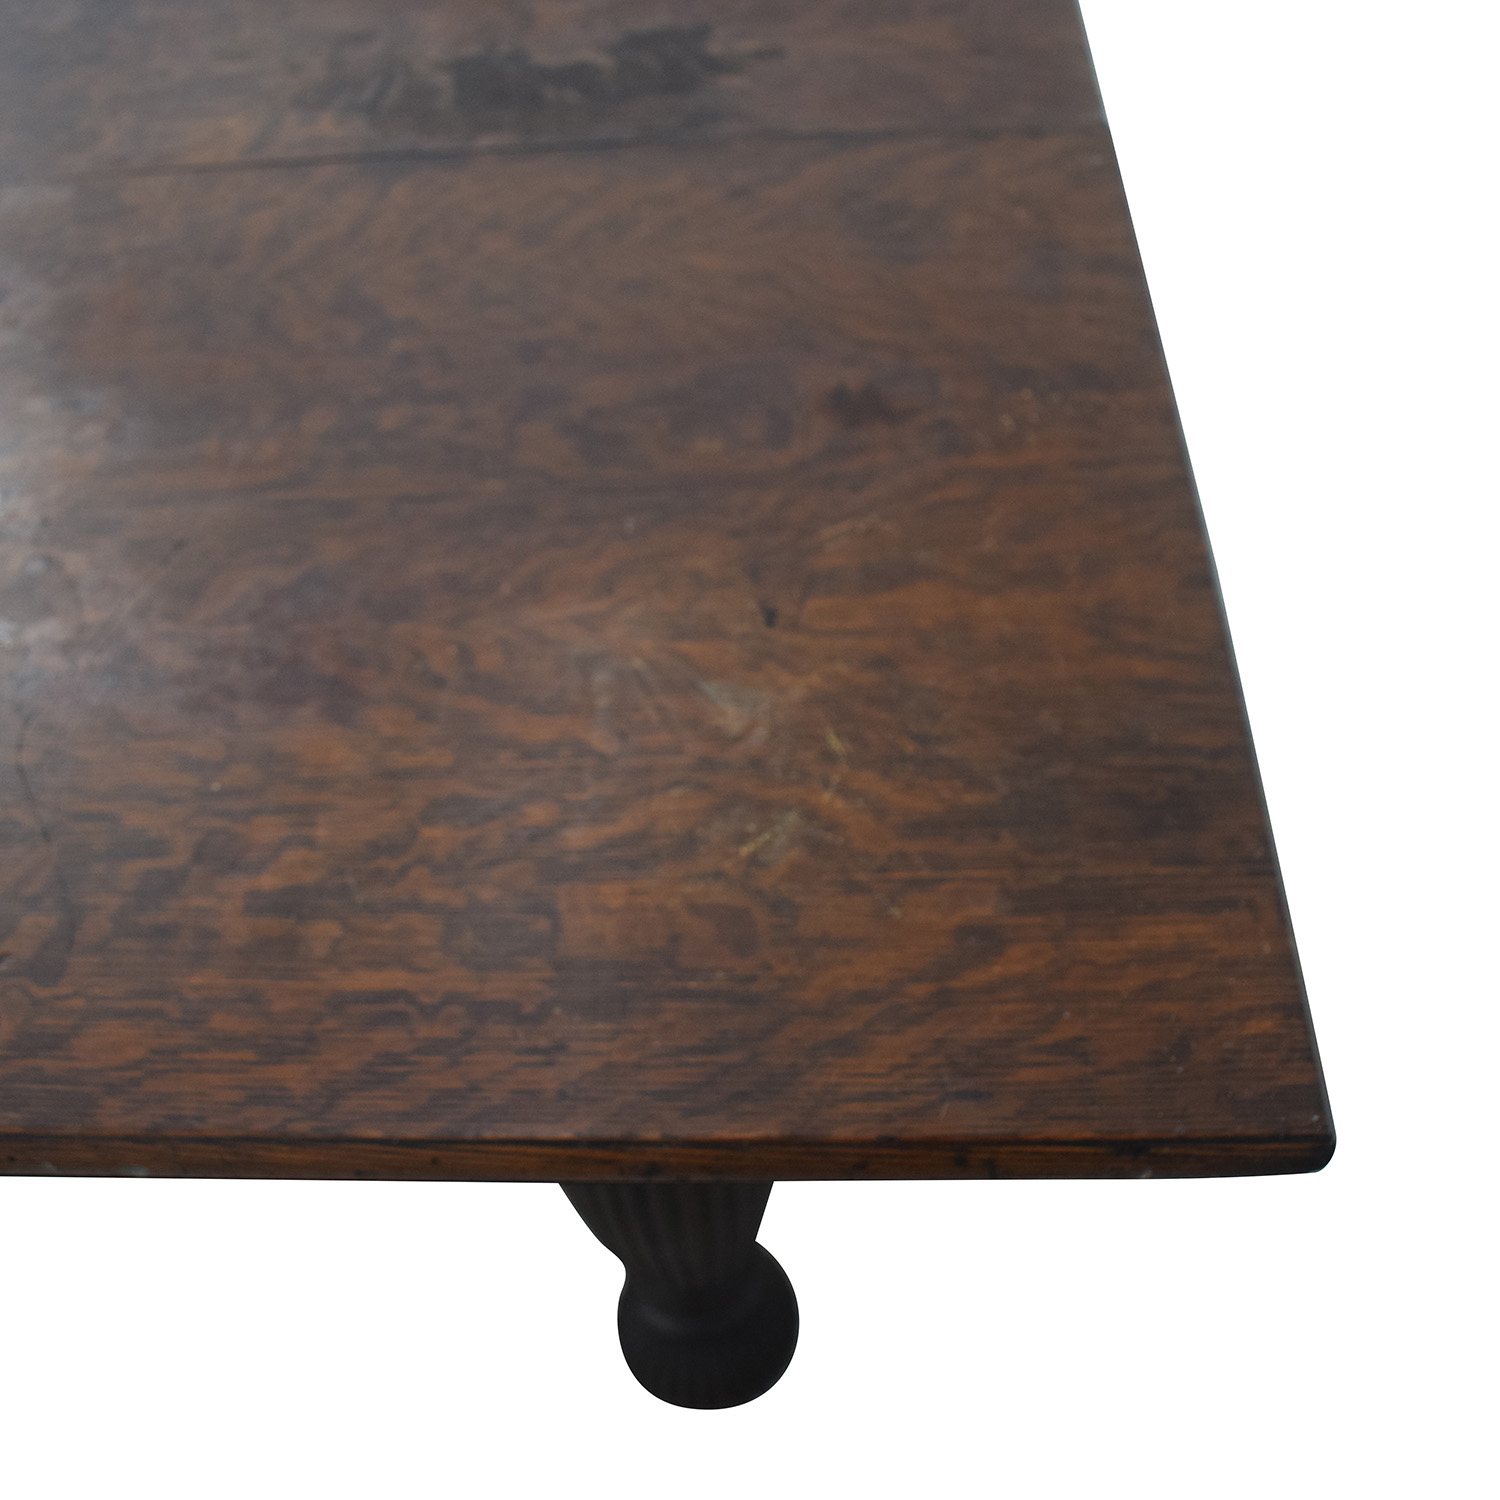 Antique Extendable Dining Table second hand